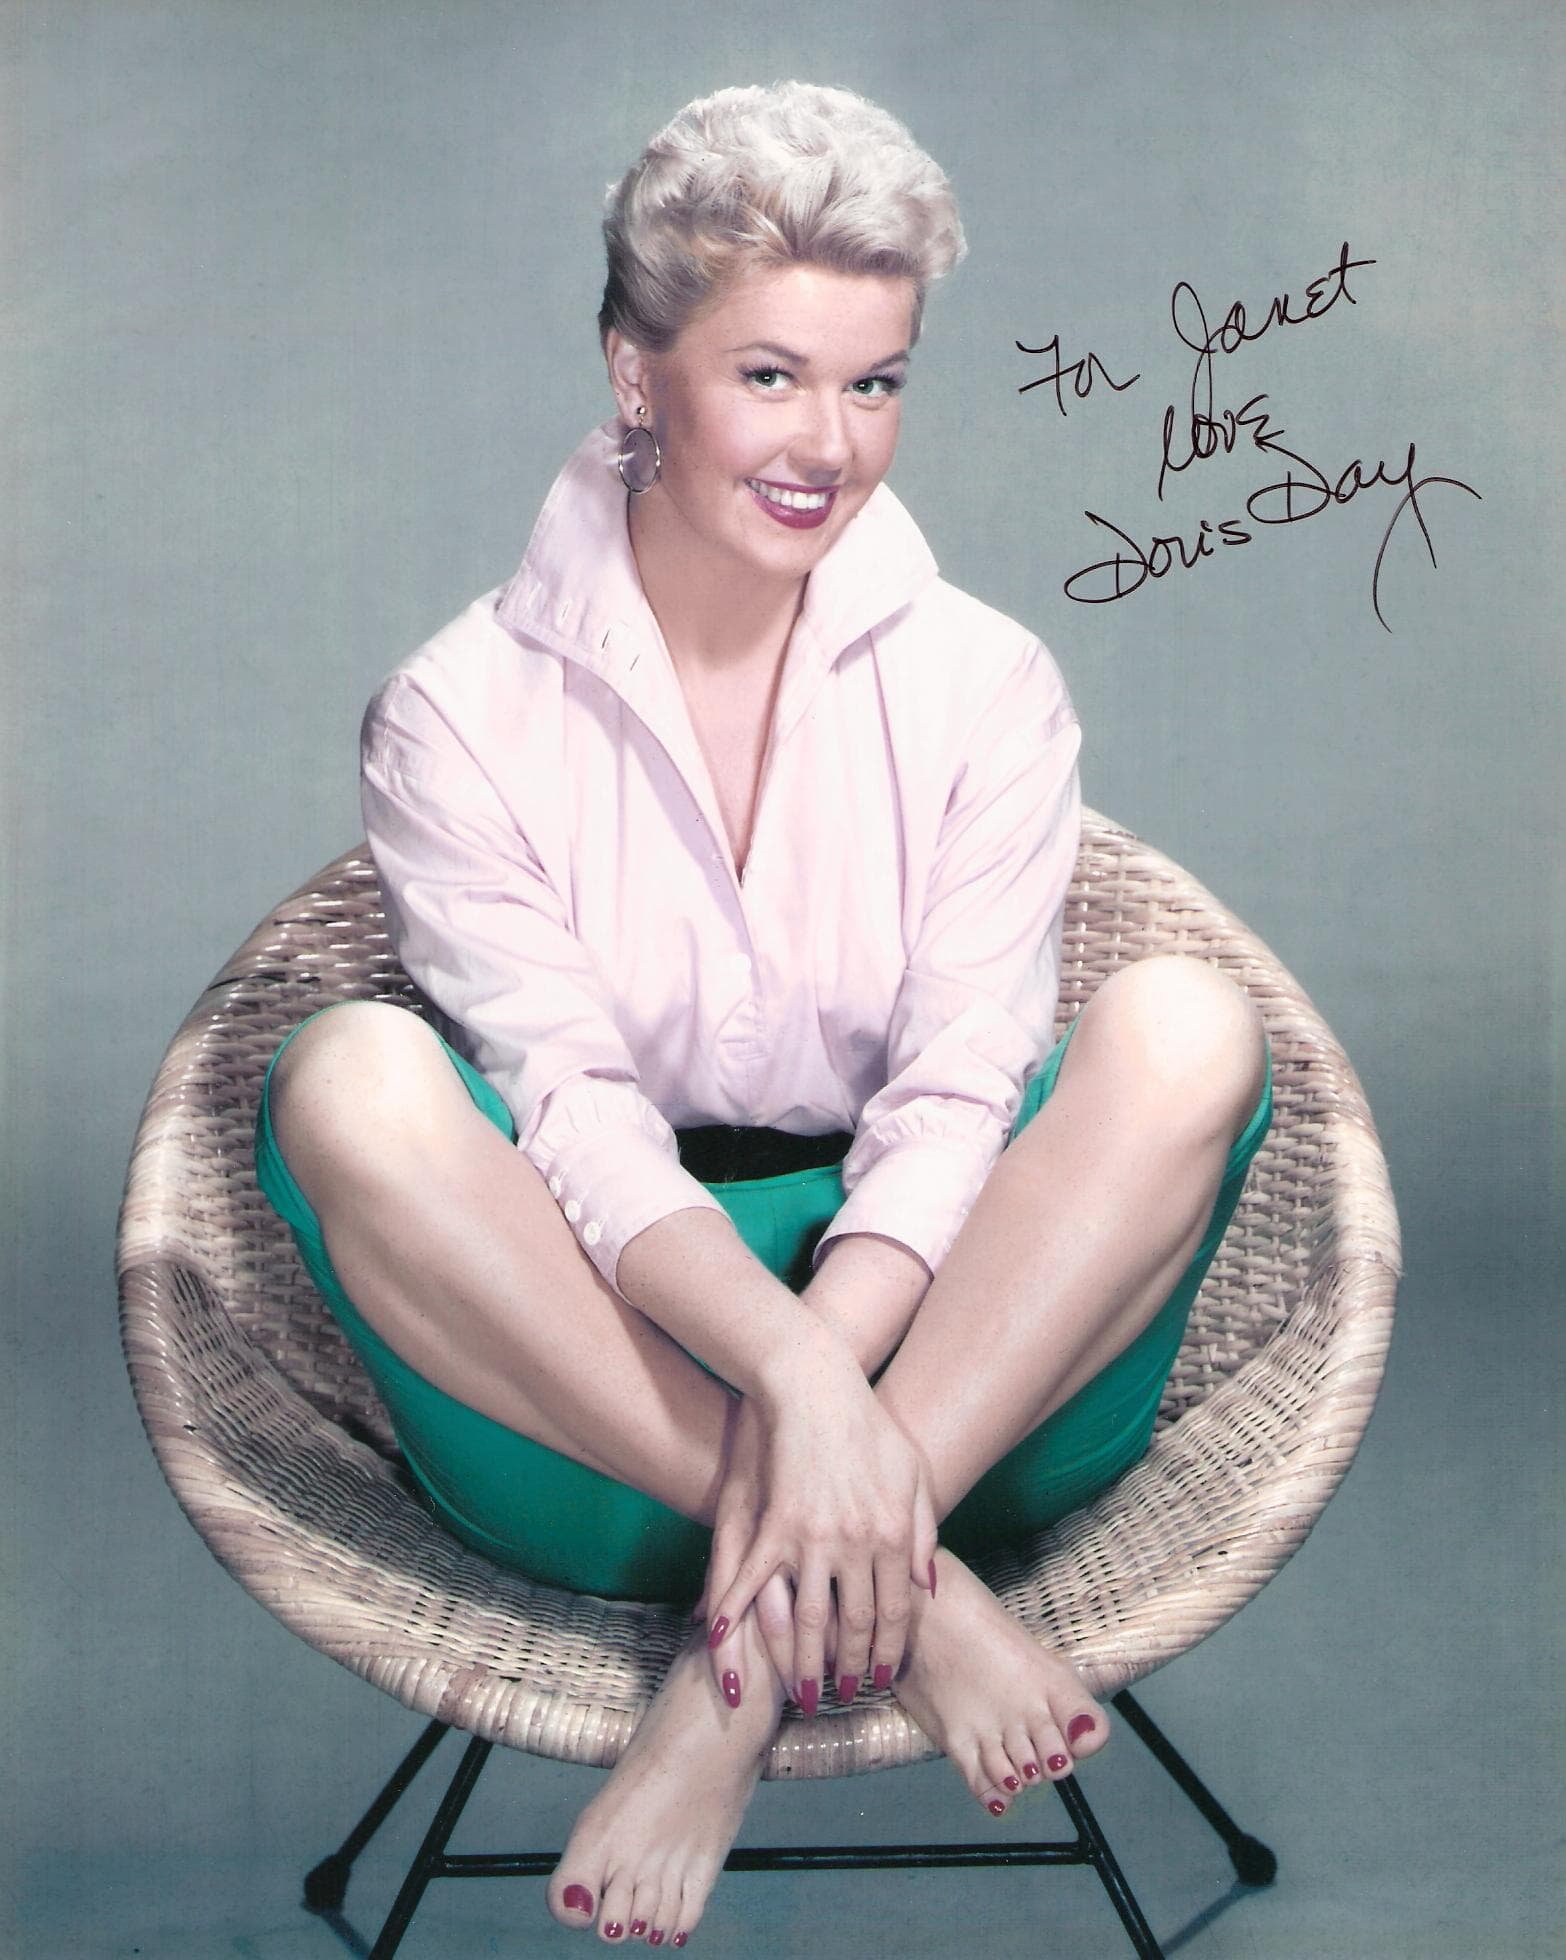 Doris Day Wallpaper